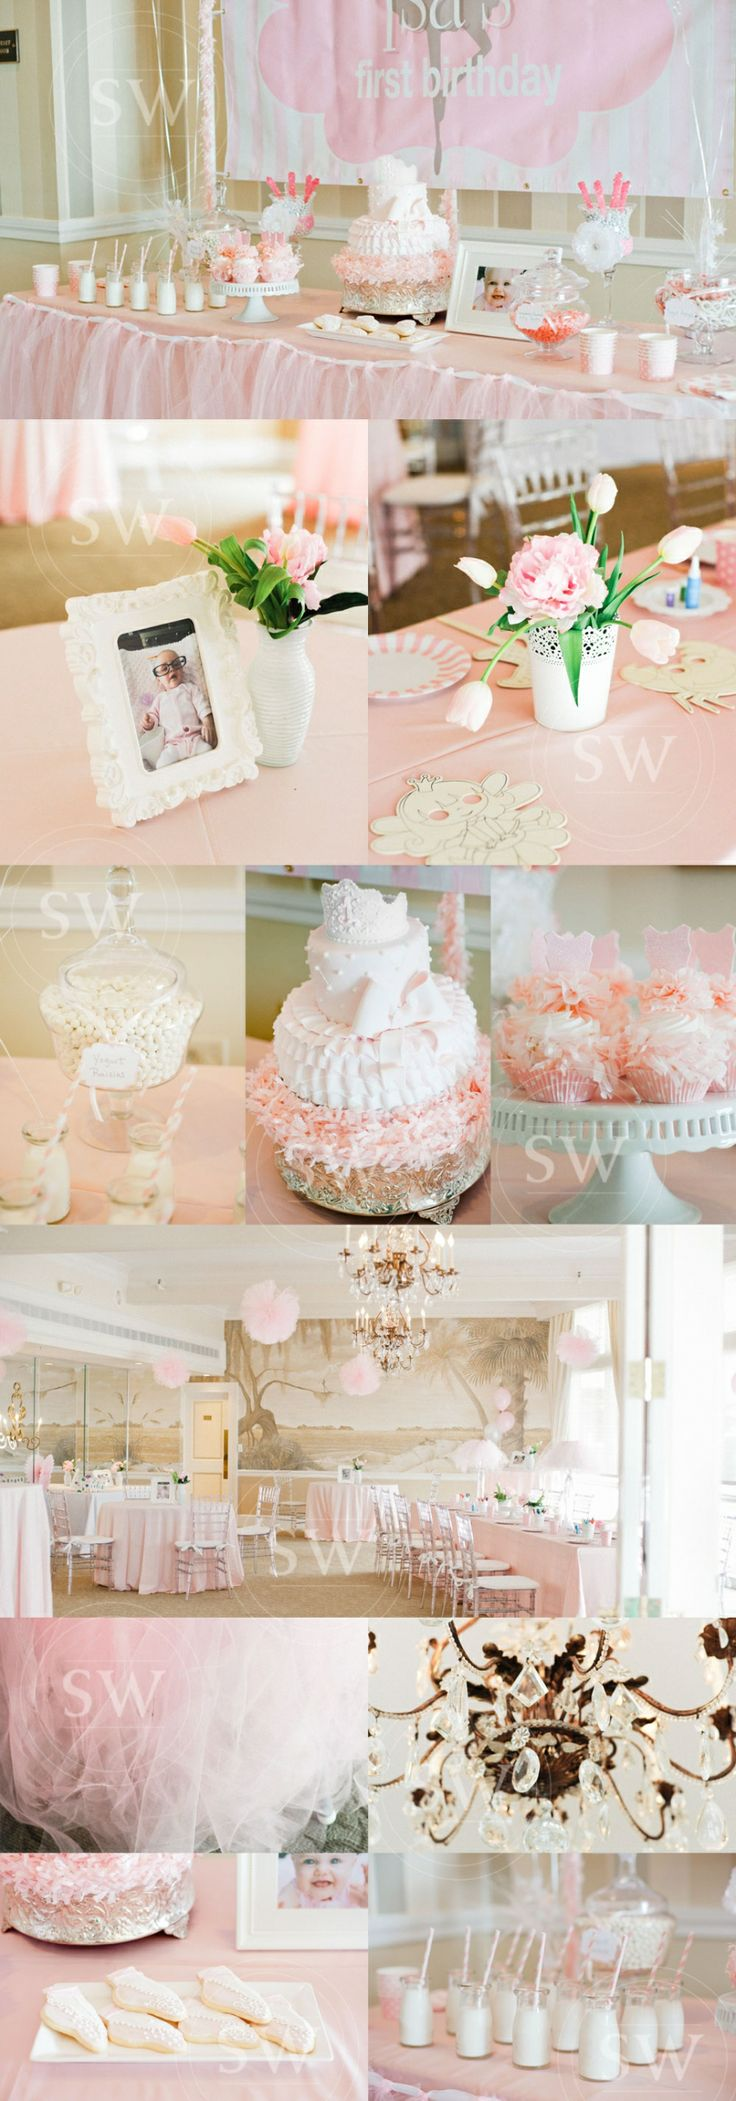 Isa's 1st Birthday Party | Part One » Stacey Woods Photography Blog